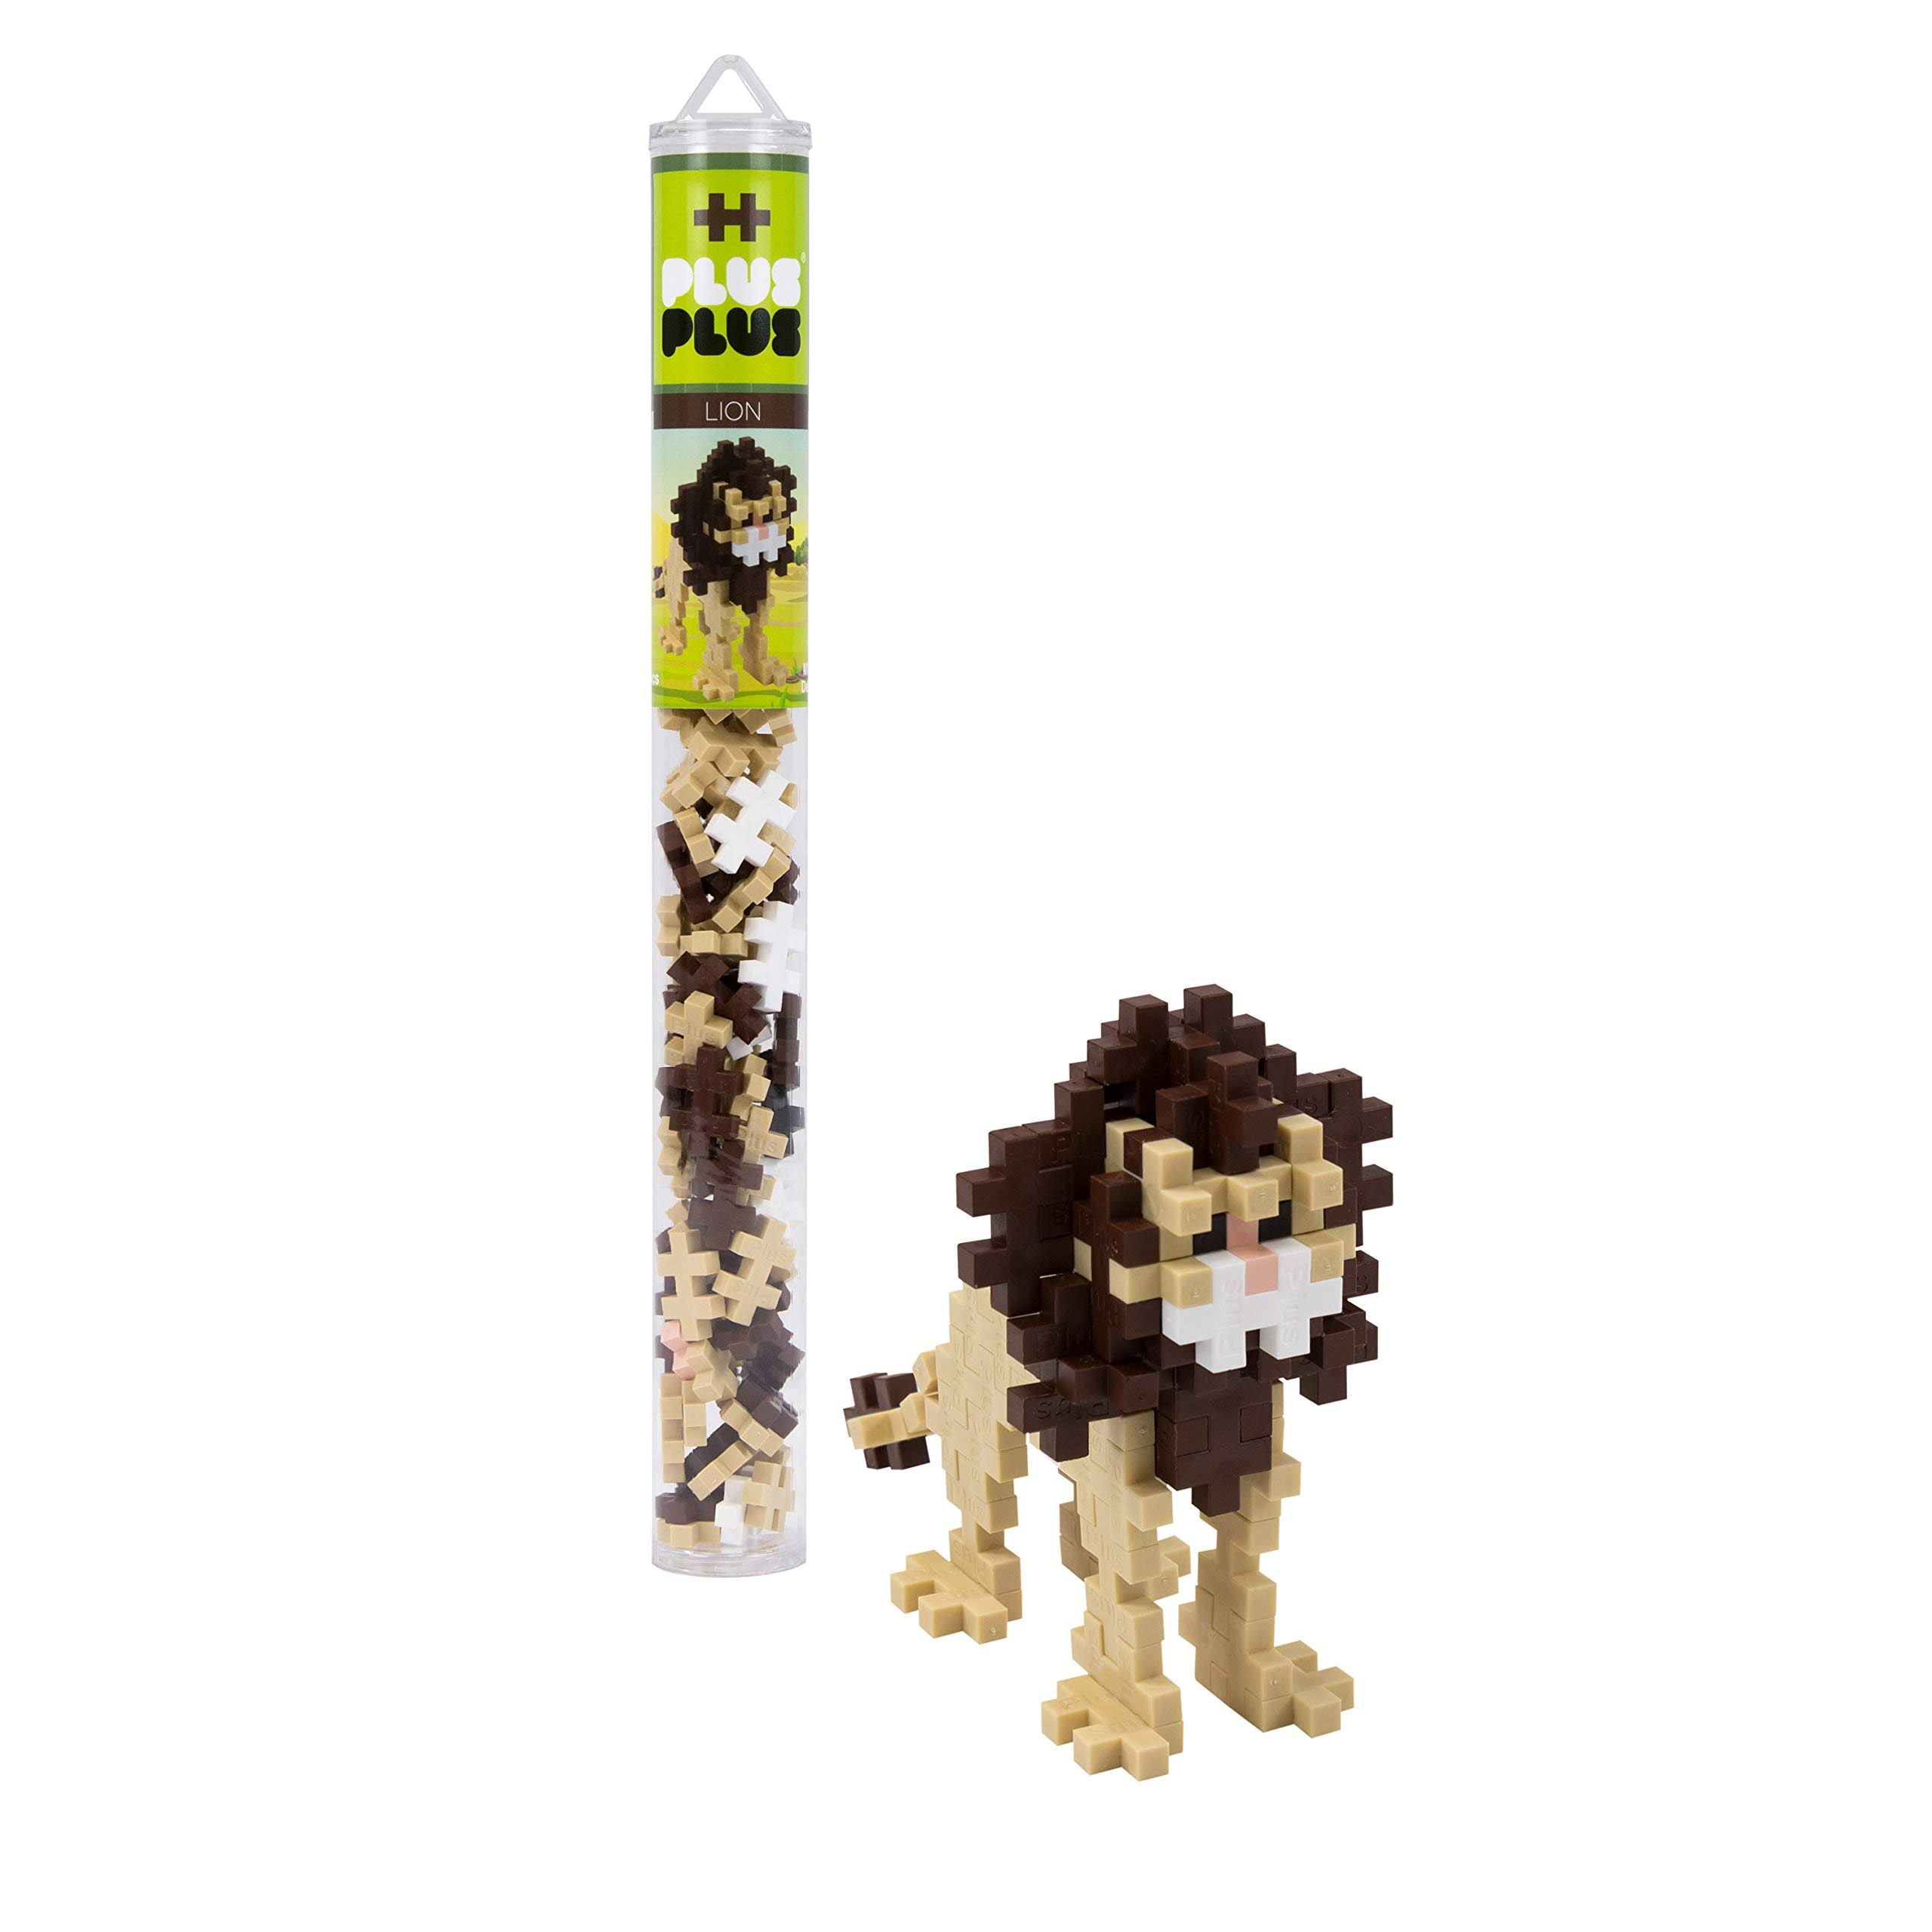 Plus Plus Mini Maker Tube Construction Toy - Lion, 70pc